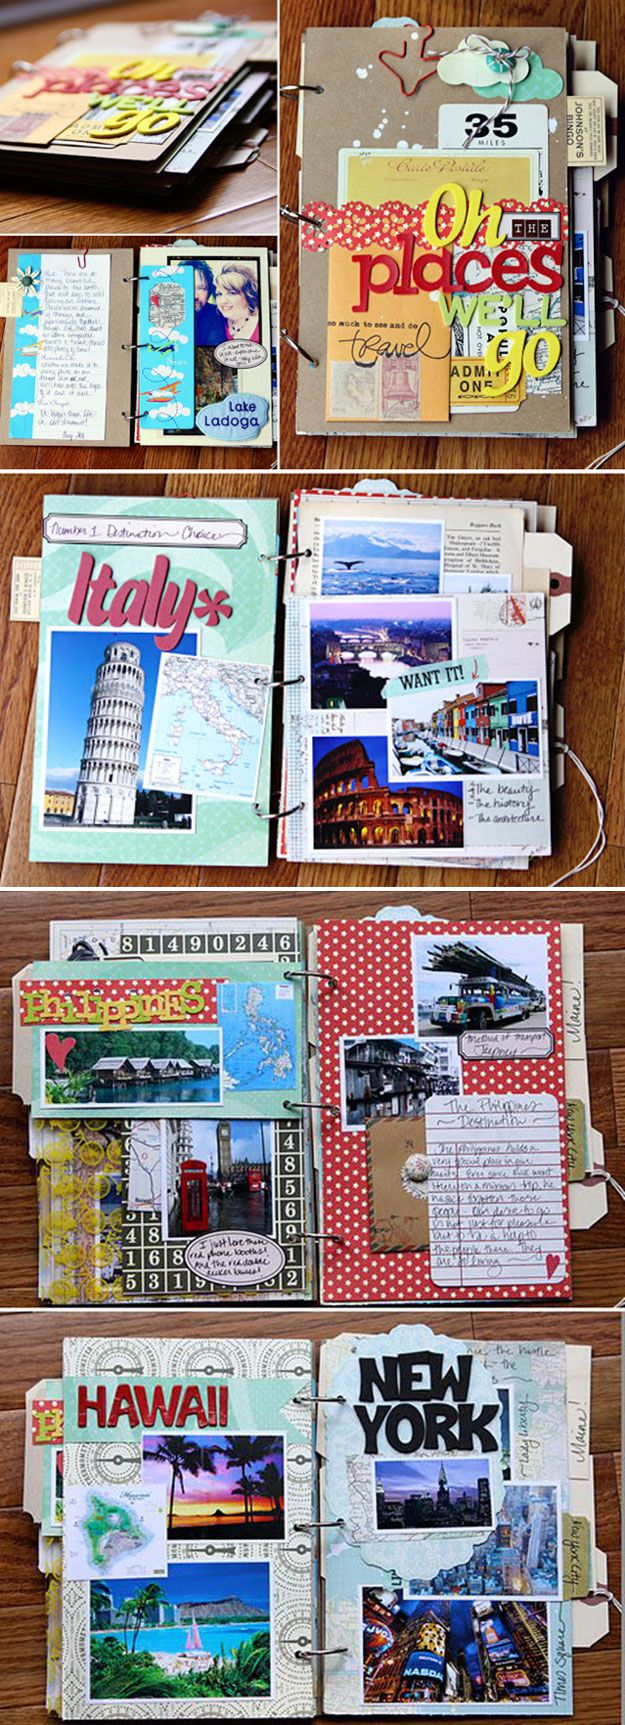 10 best ideas about scrapbook travel album on pinterest travel journal scrapbook scrap books and travel photo album